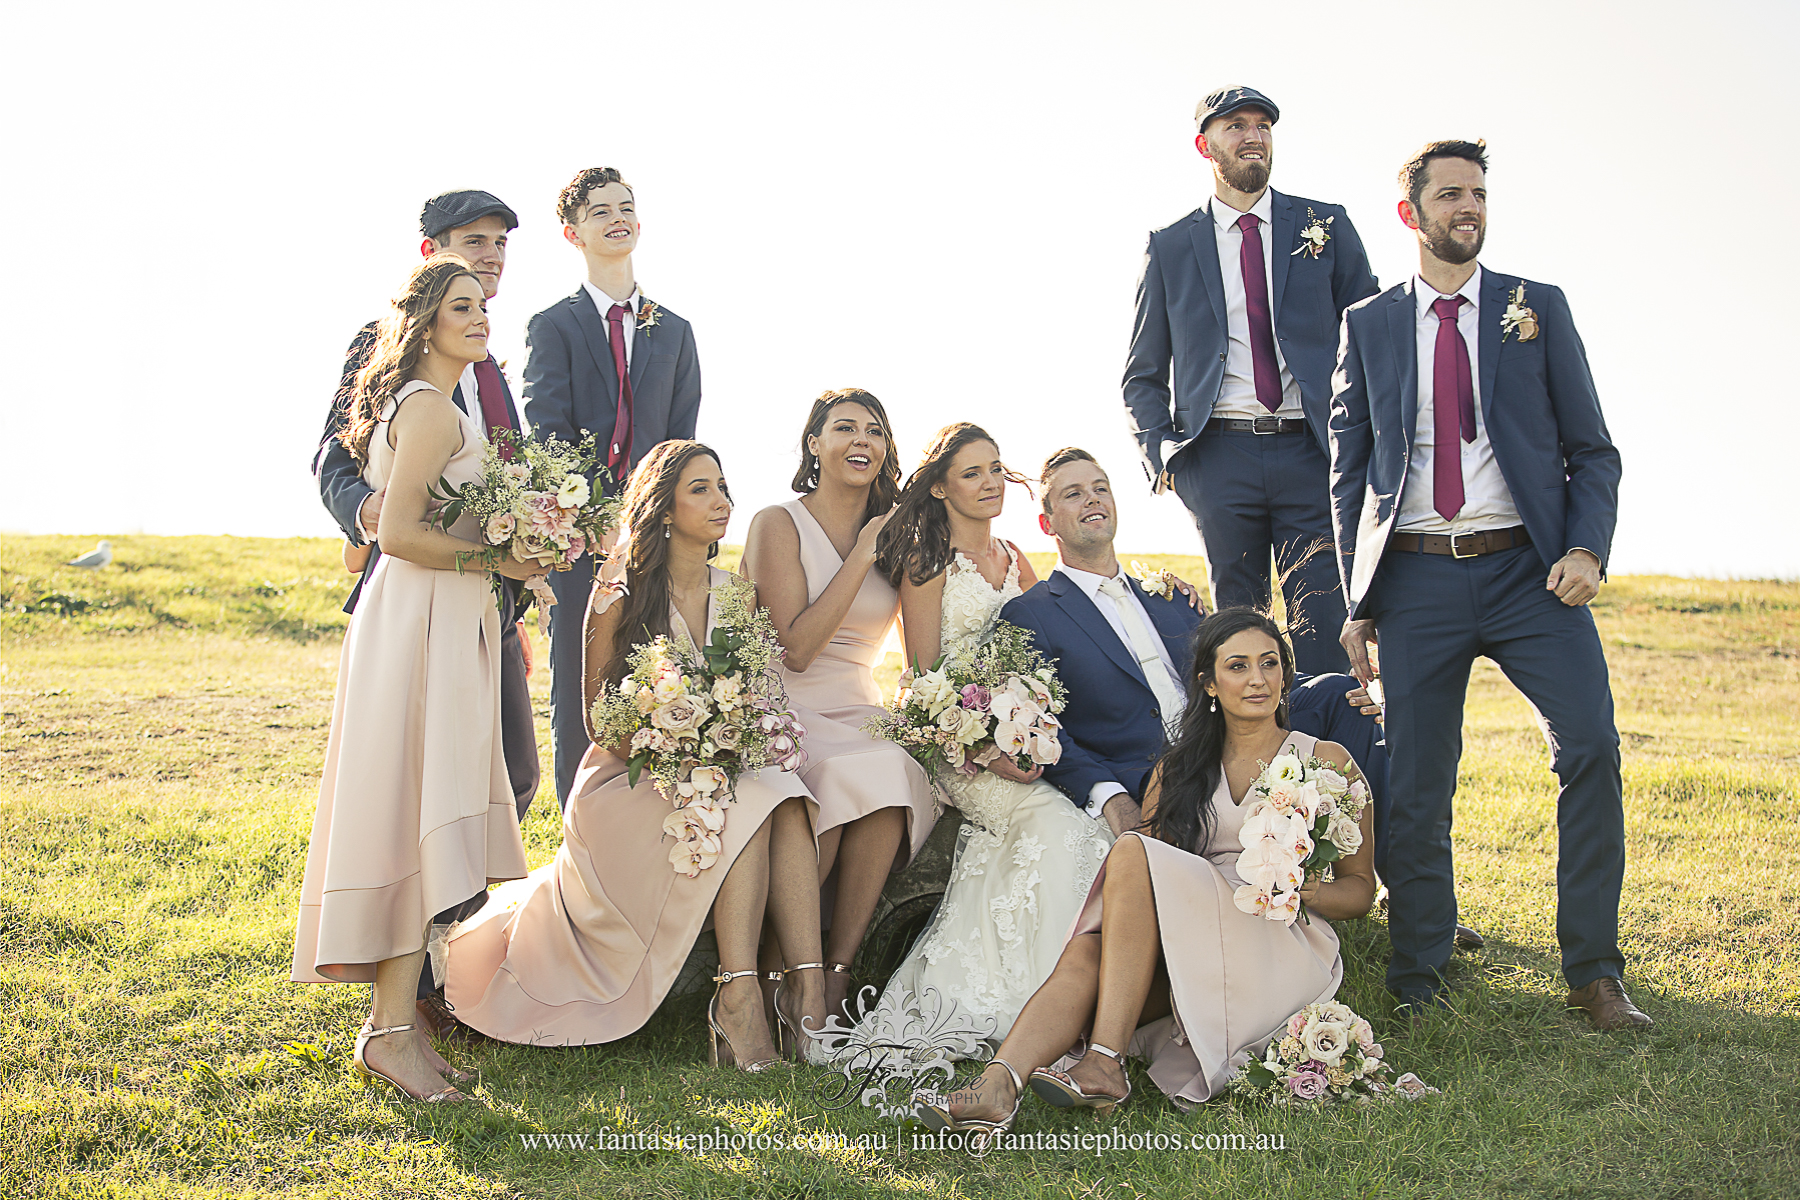 Wedding Photography at Le perouse   Fantasie Photography